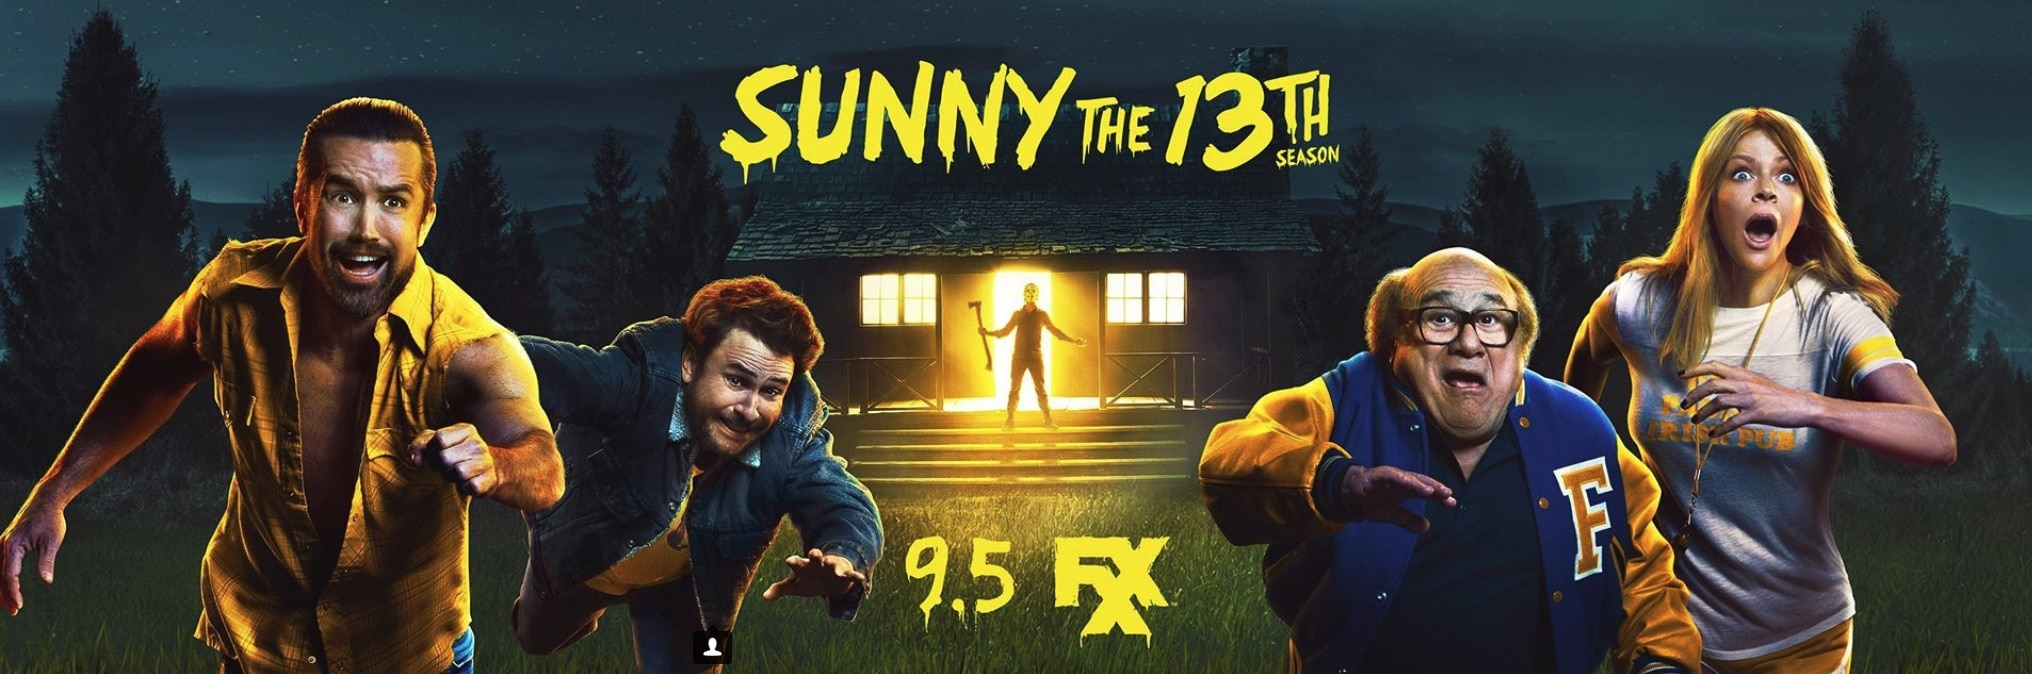 Sunny the 13th Part 2 - IT'S ALWAYS SUNNY S13 Poster Brings the FRIDAY THE 13TH Cheer